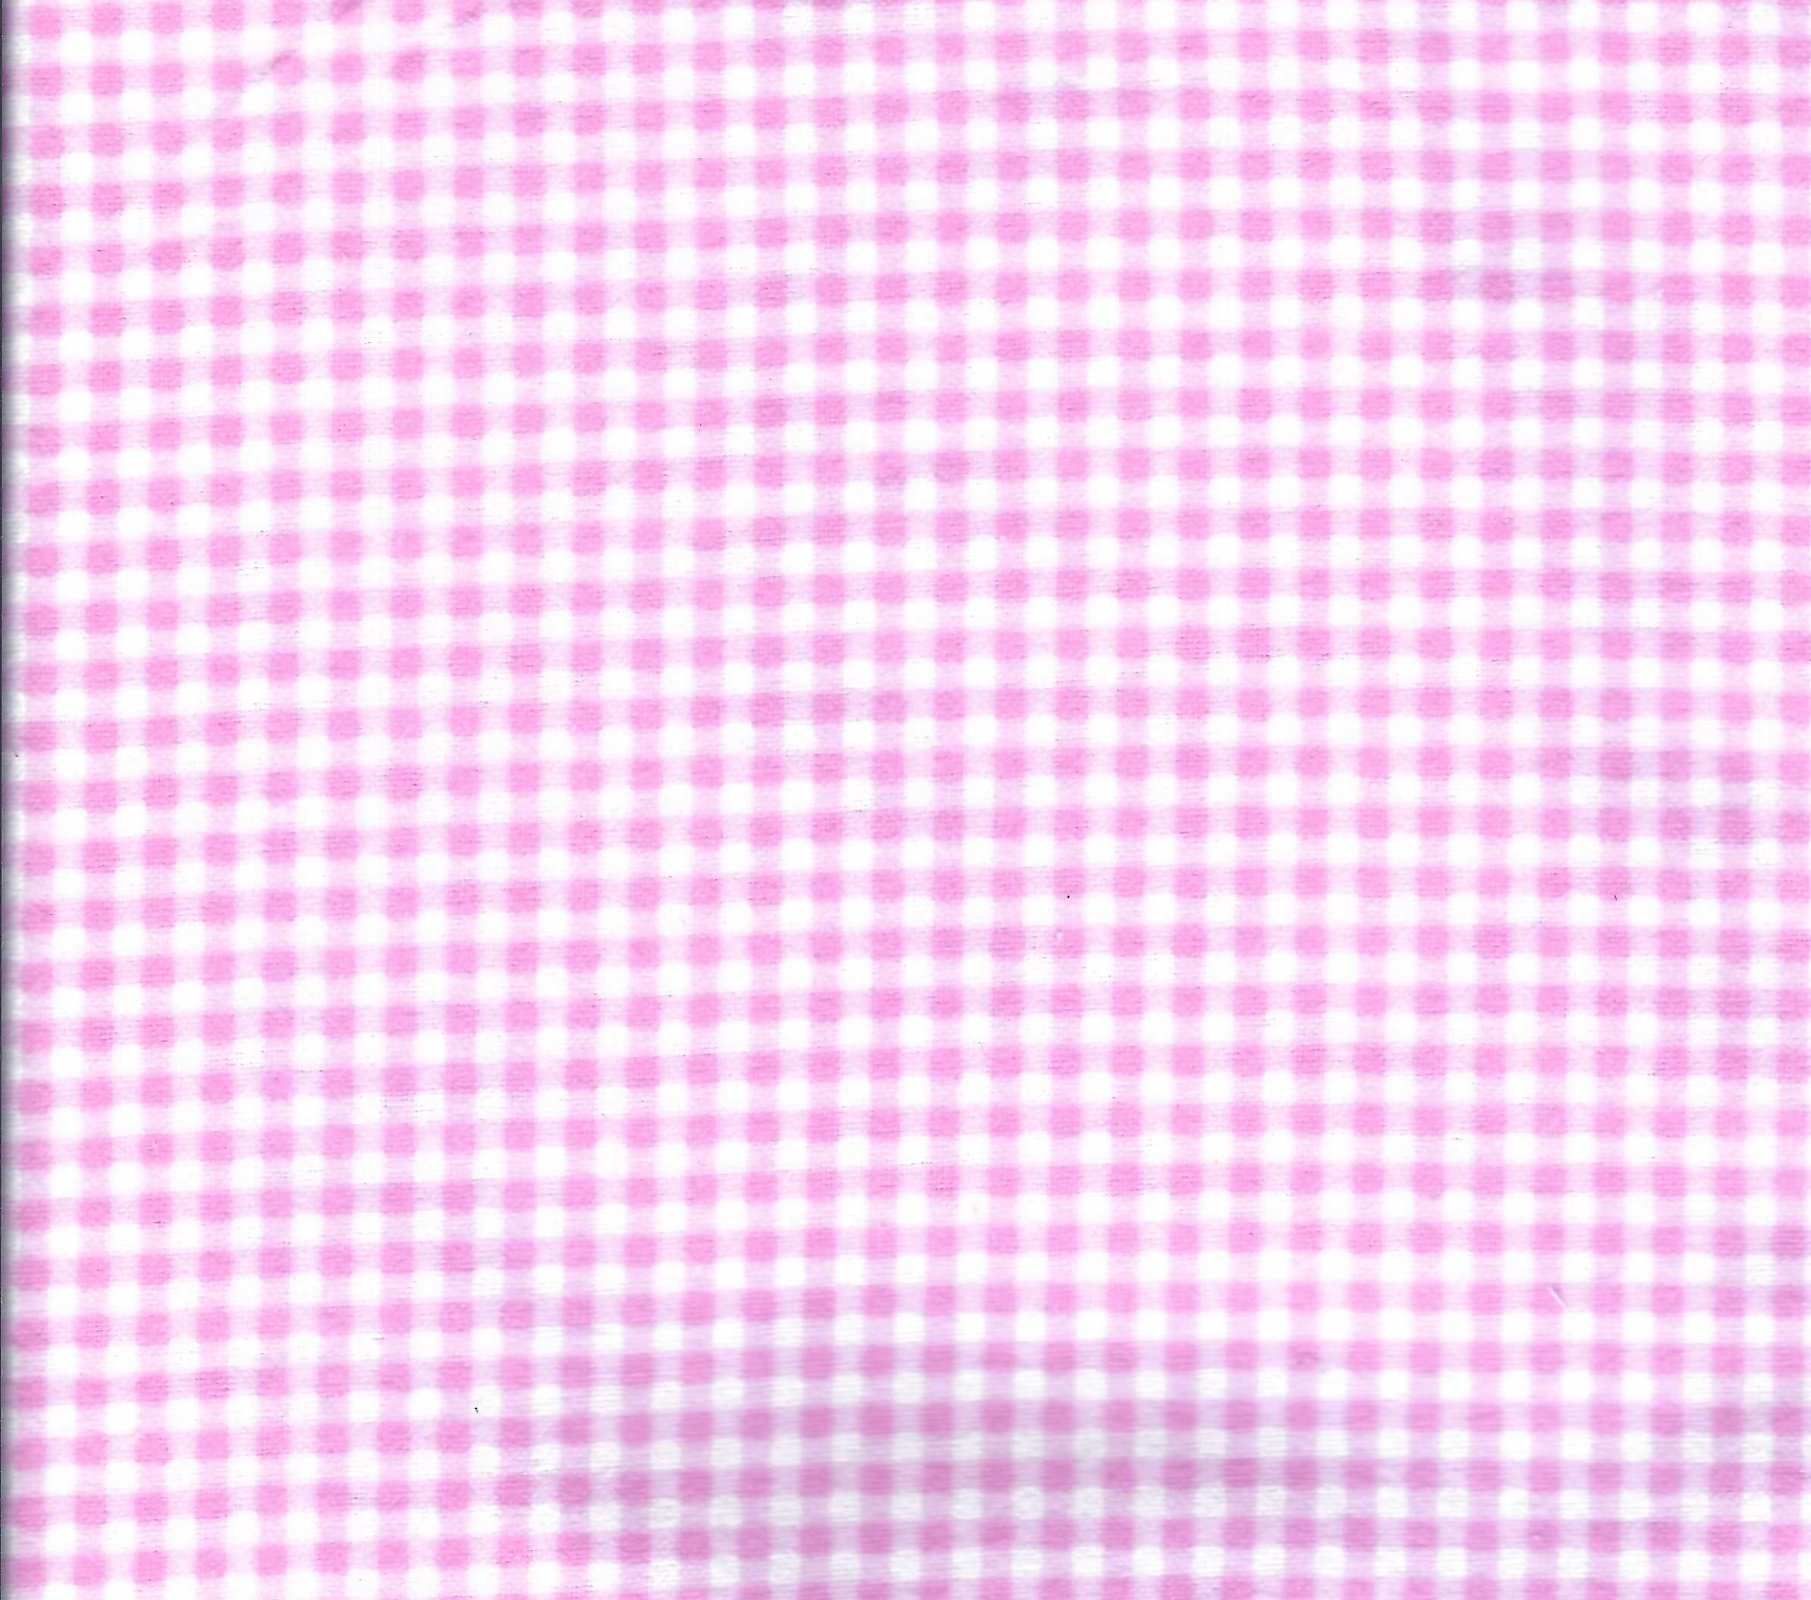 Flannel Hemstitched - Pink Gingham Check